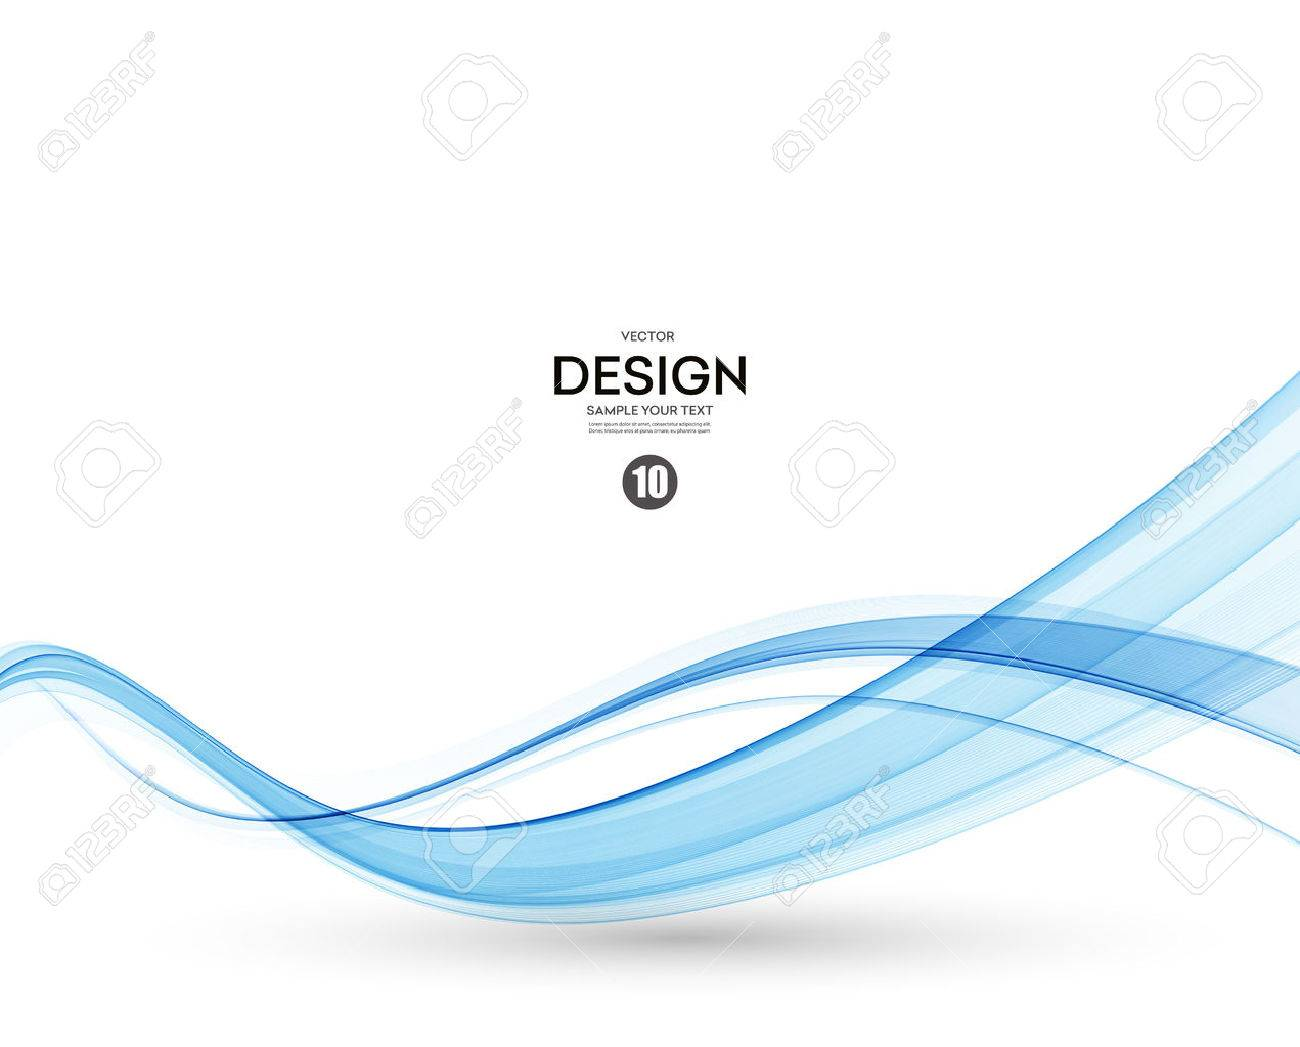 Abstract vector background, blue transparent waved lines. - 53407908